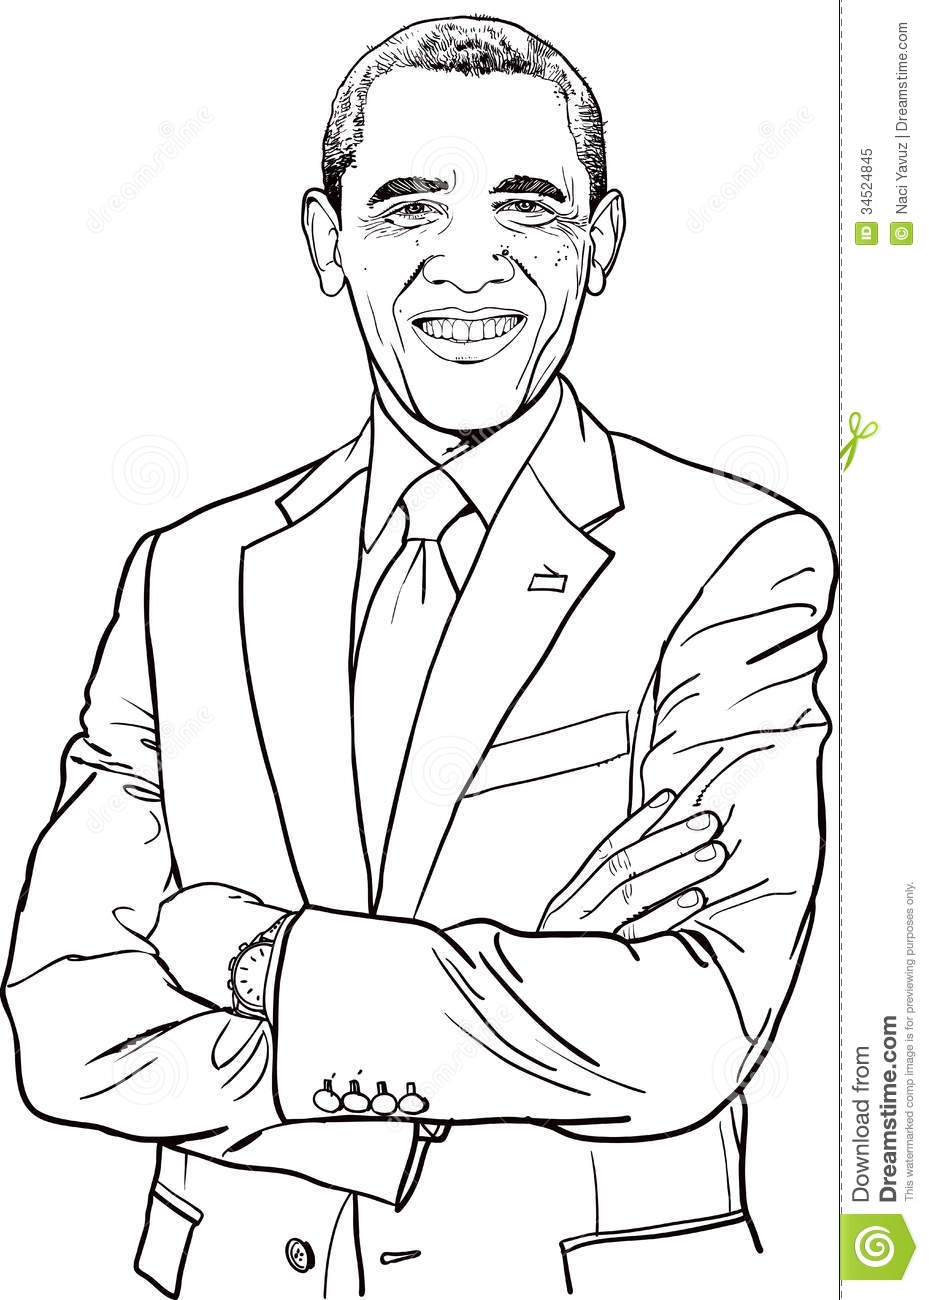 Barack Obama Coloring Page - African American Princess Coloring Pages